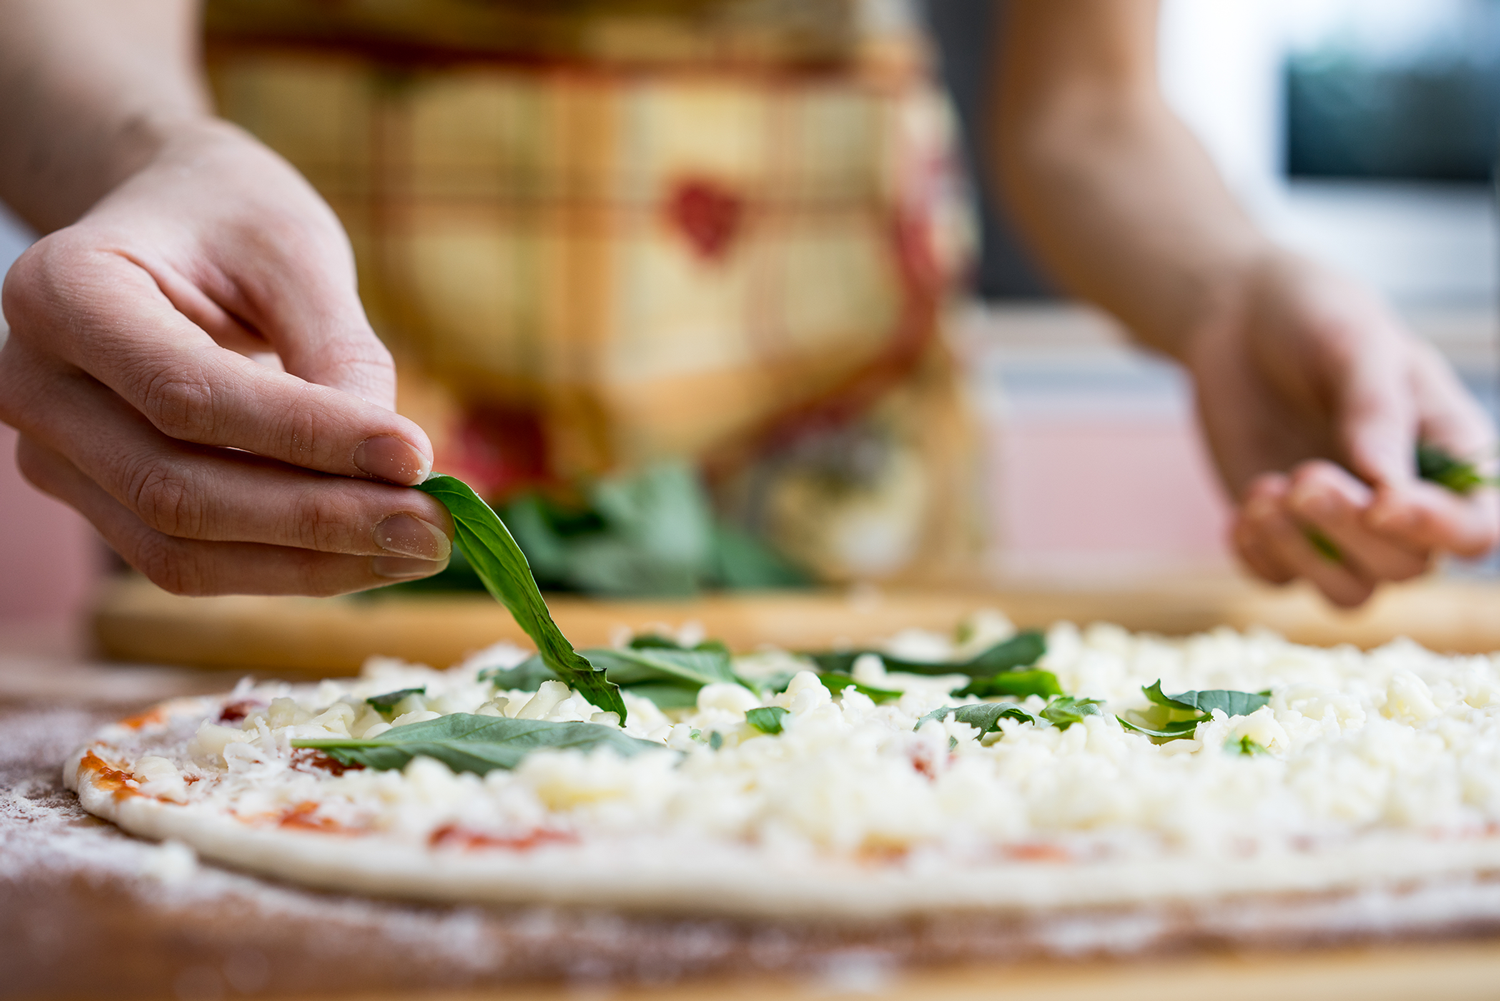 Someone Adding Basil Leaves to an Uncooked Kosher Pizza